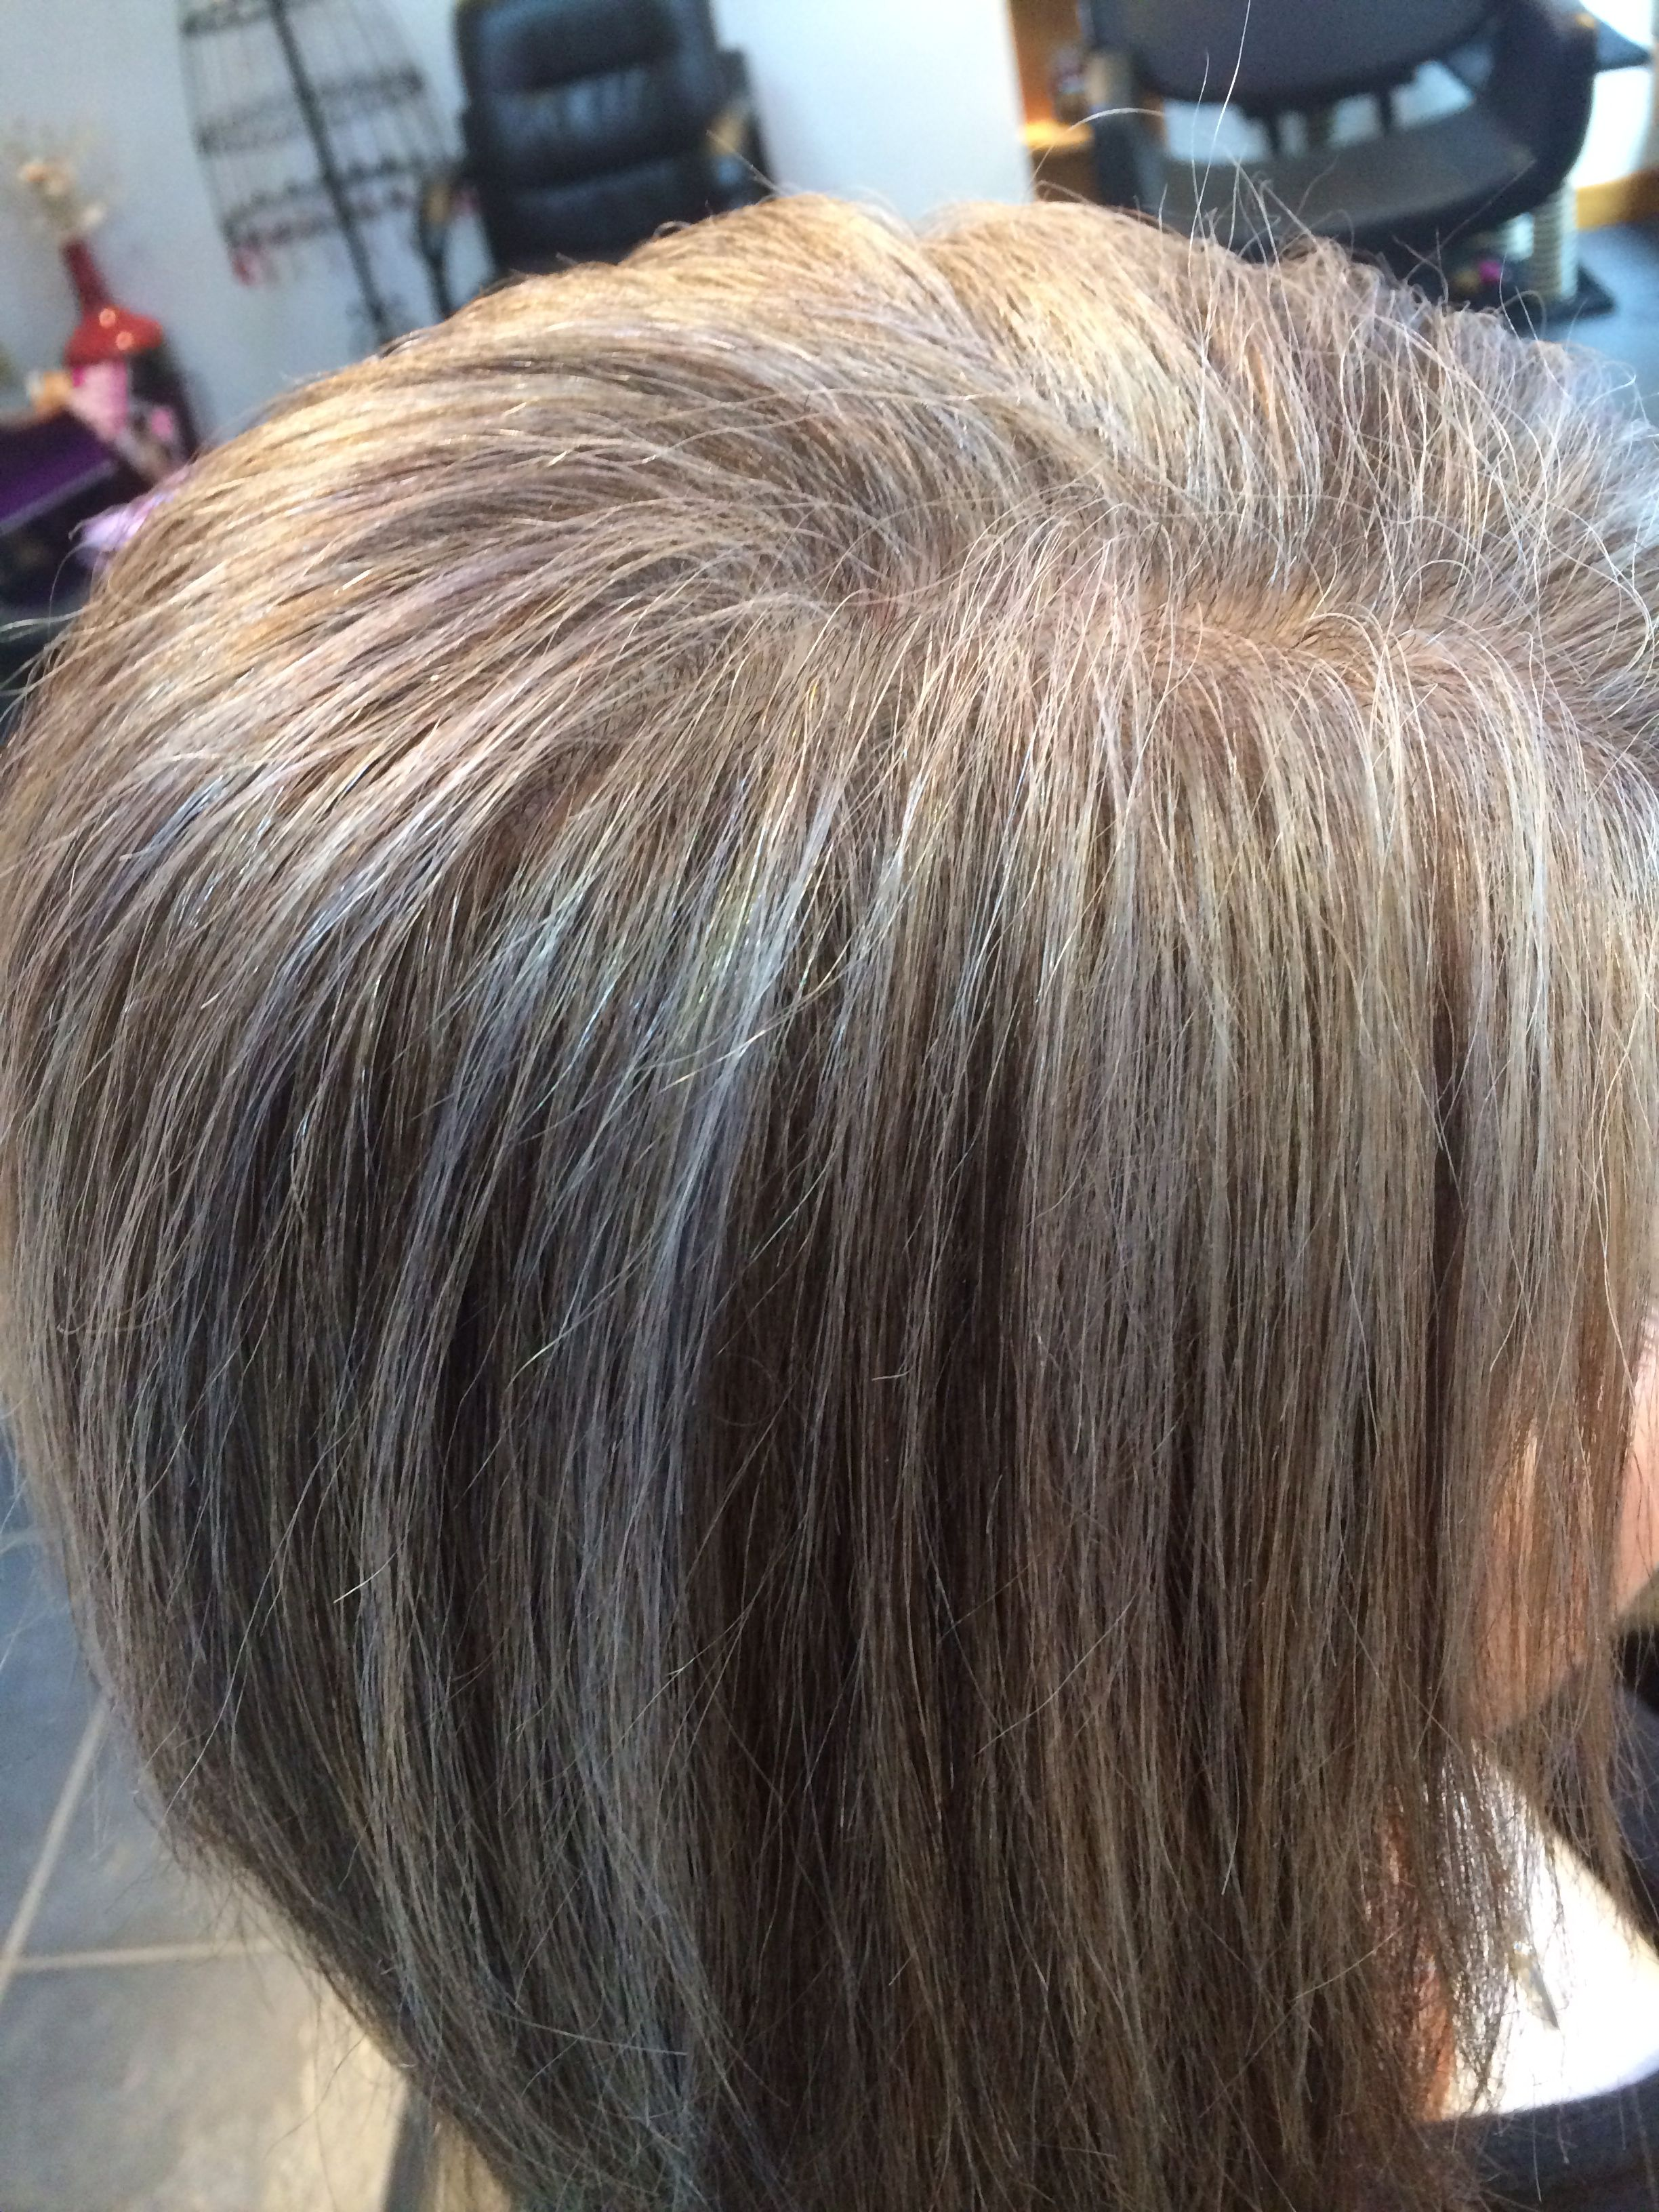 Silver highlights easy way to start the transition to having gray